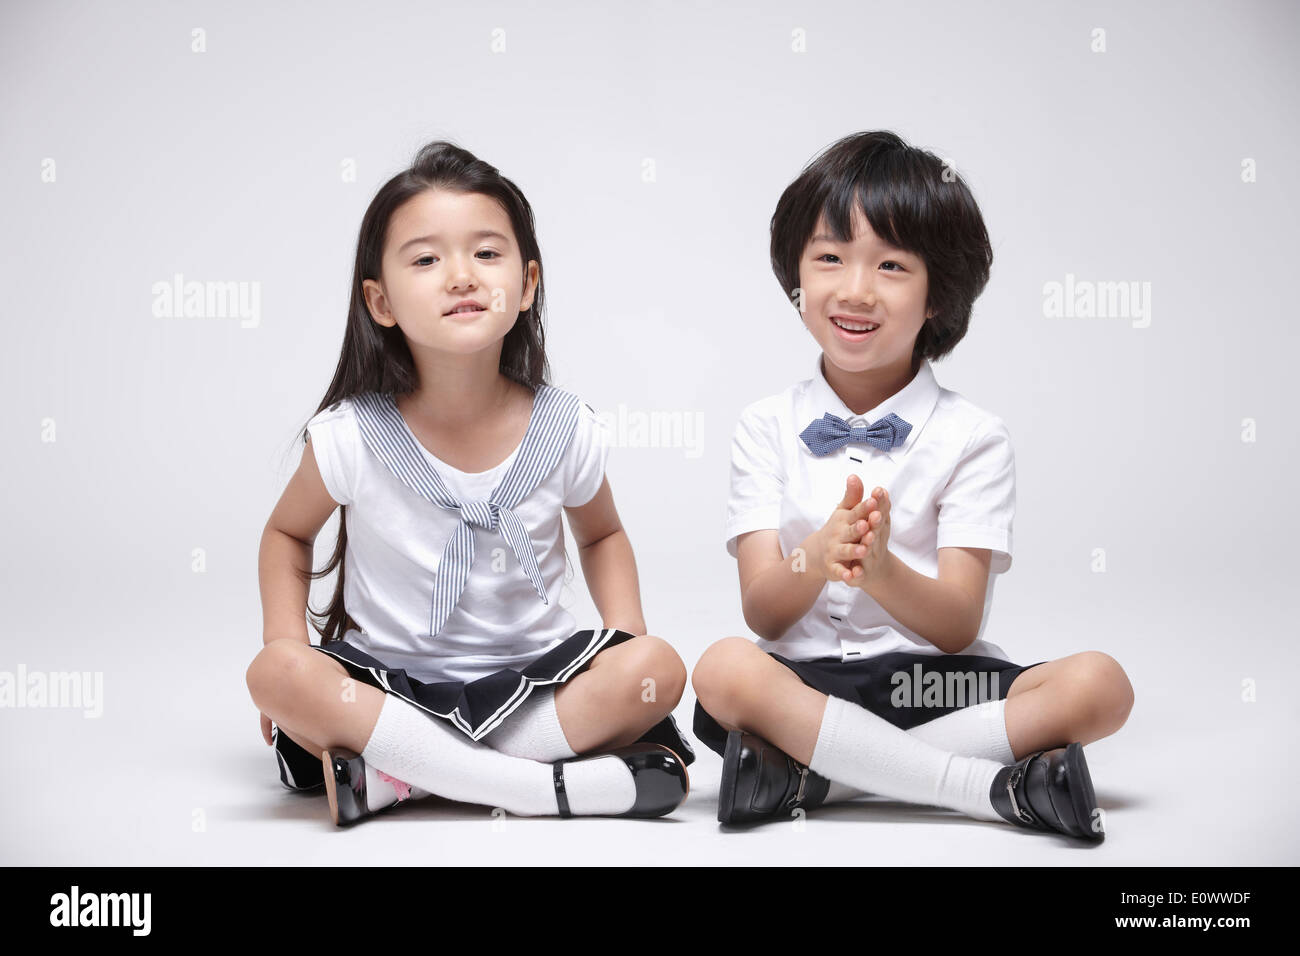 a boy and a girl sitting next to each other stock photo 69410251